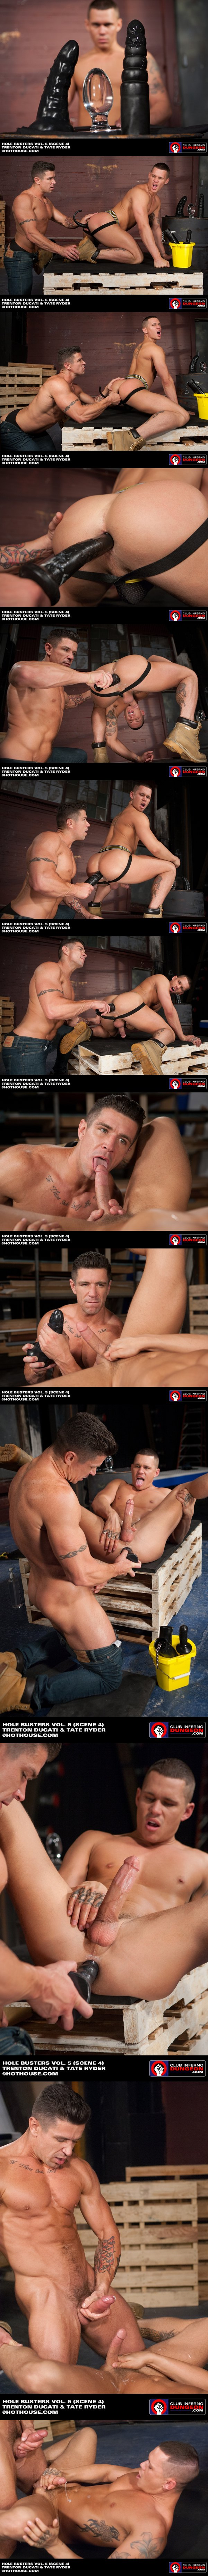 Trenton Ducati toy & buttplug fucking Tate Ryder at Clubinfernodungeon 02